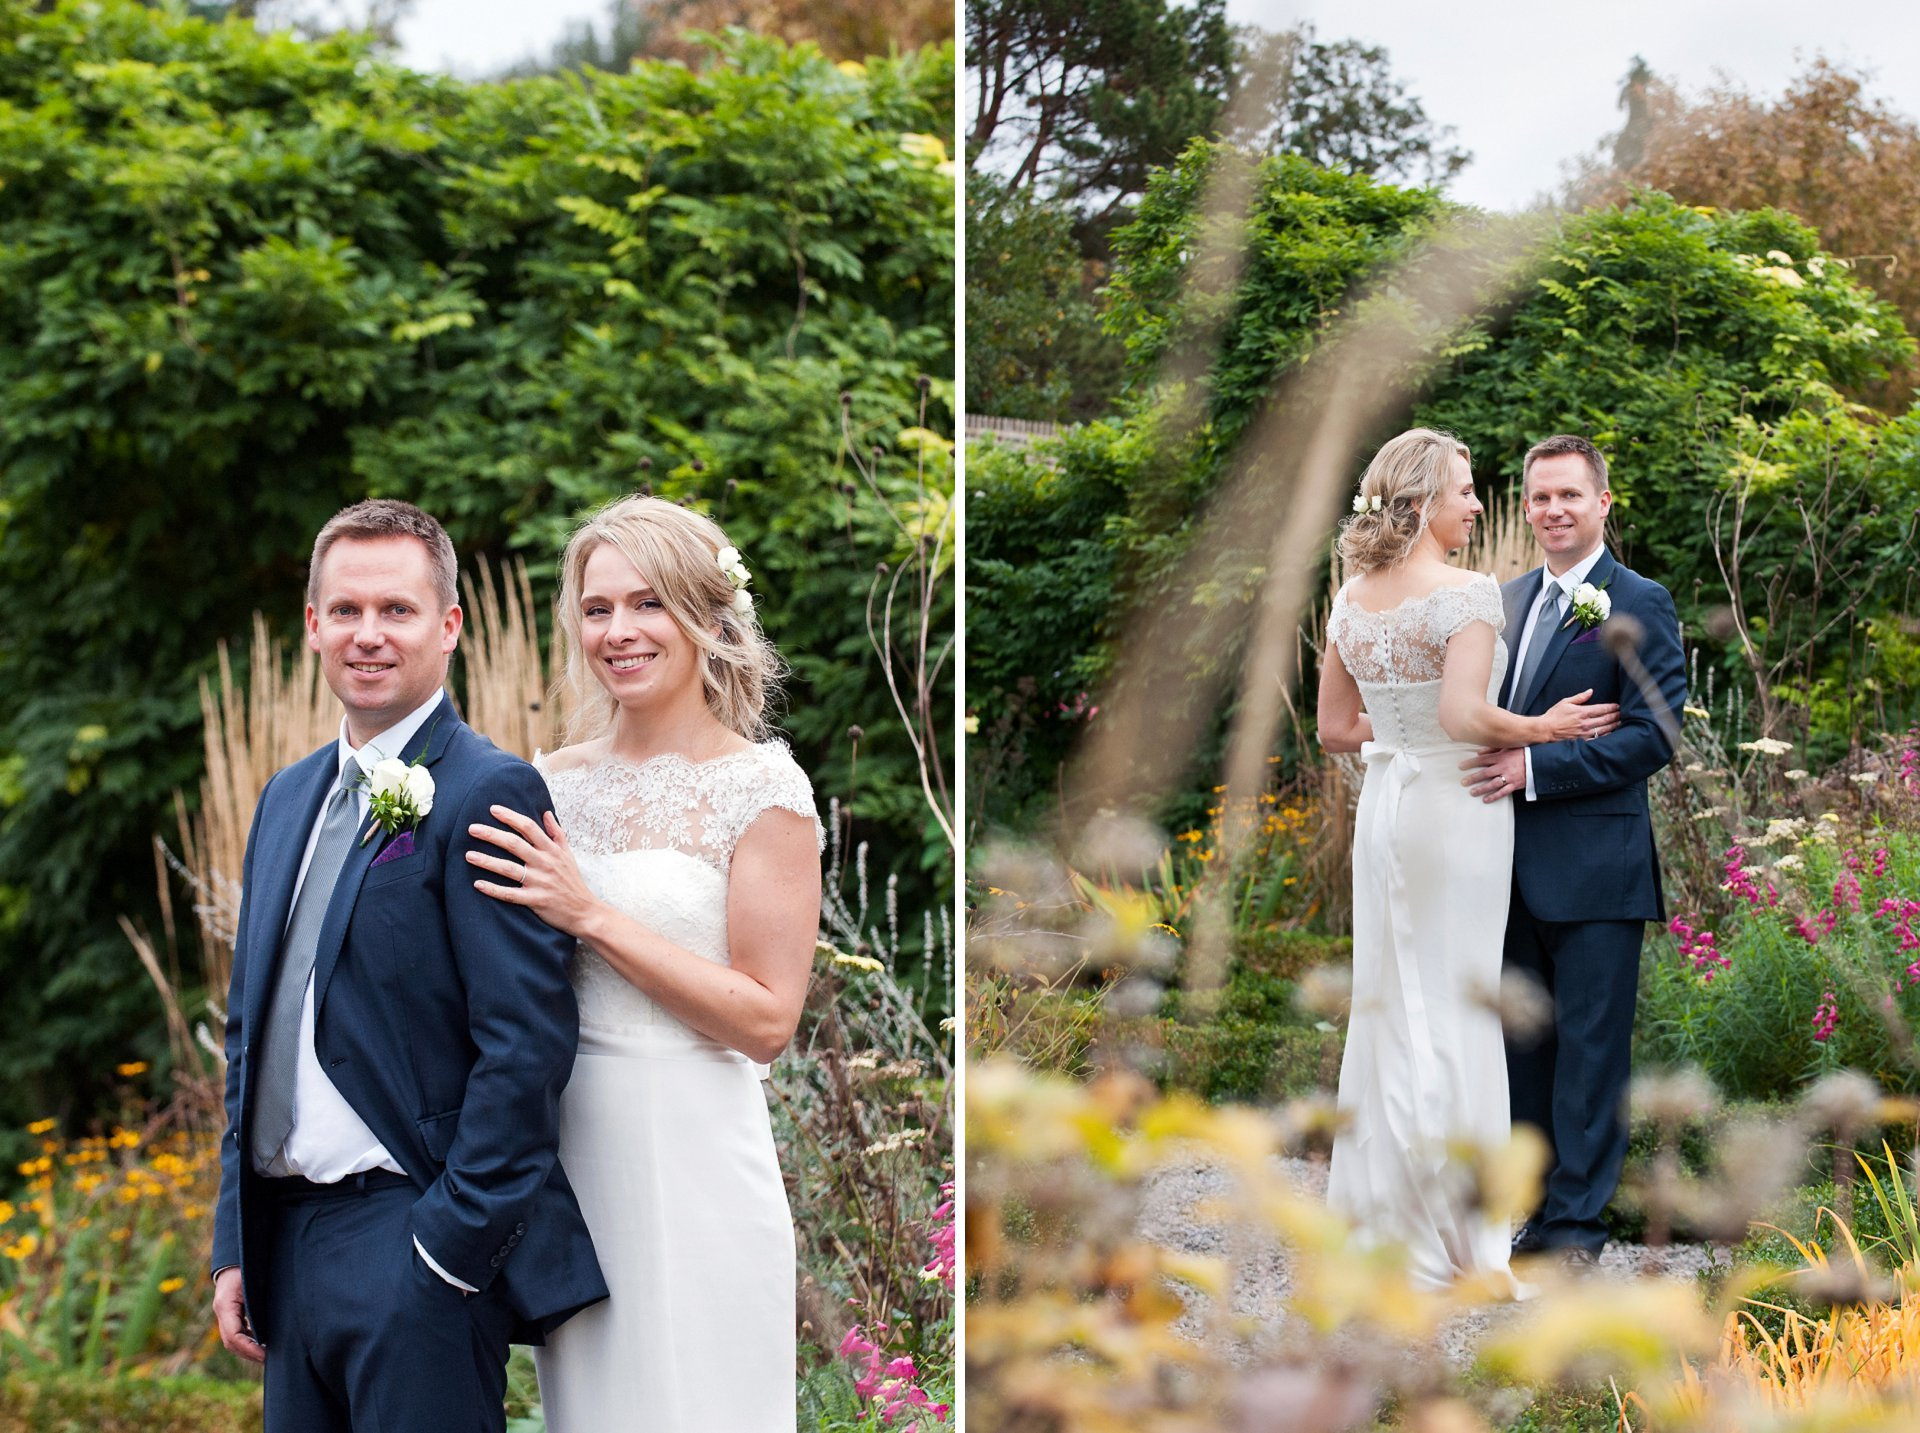 Bride and groom pose for a portrait in the knotted garden at Fulham Palace